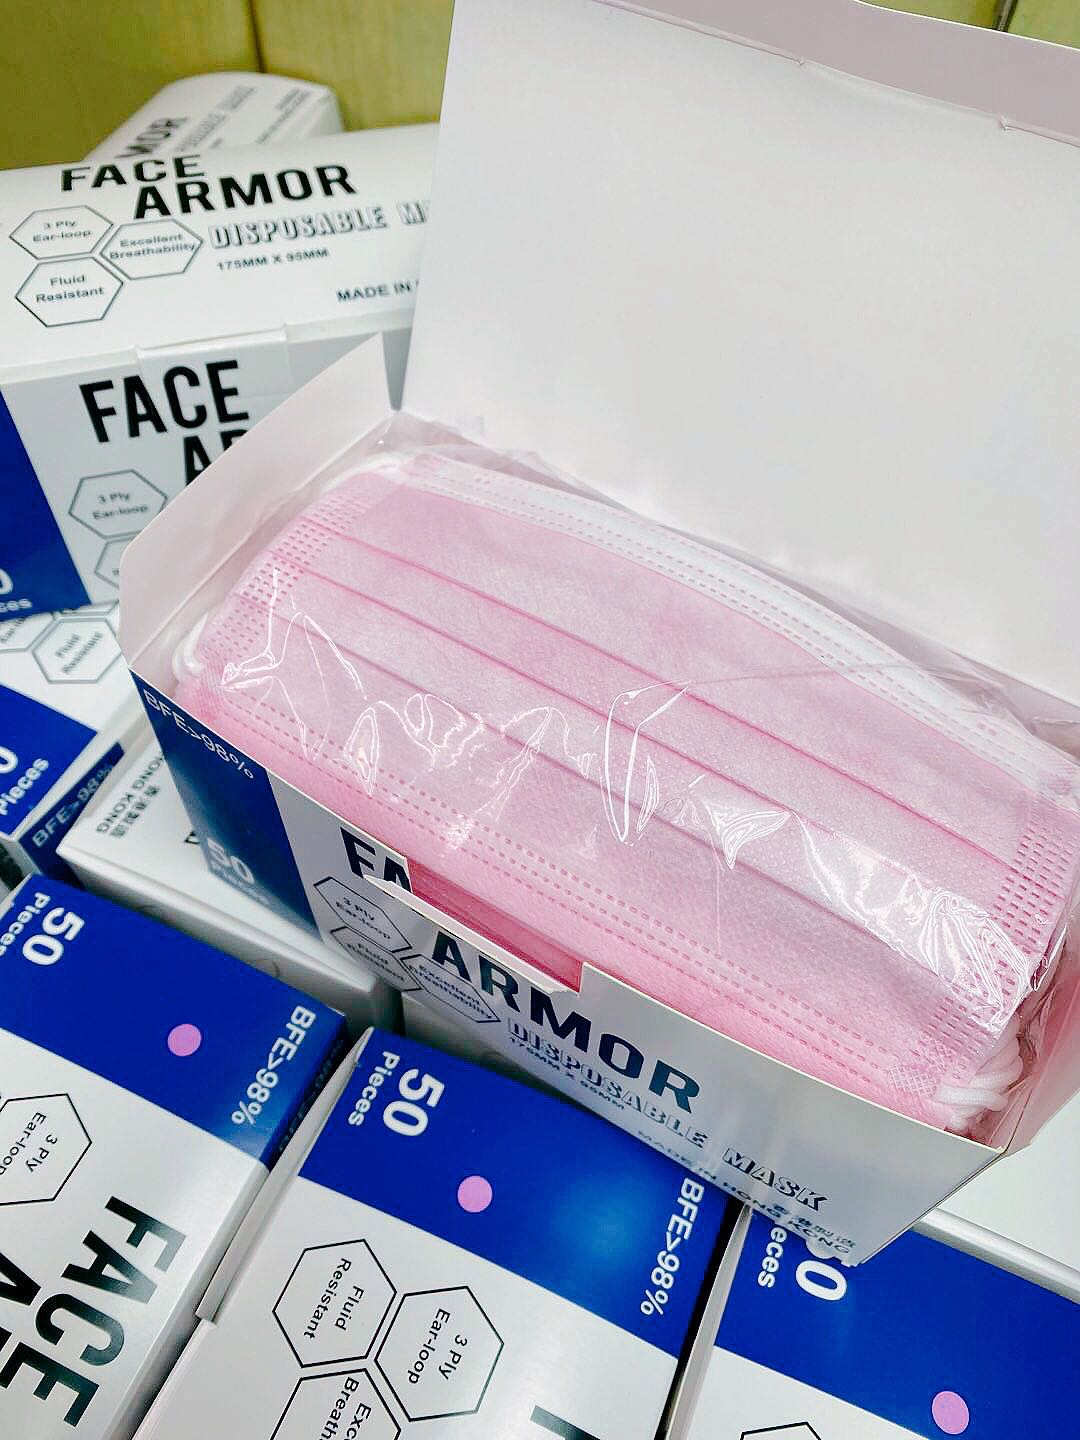 Face Armor Disposable Masks | ASTM LEVEL 3 | Made in Hong Kong| 50 PIECES | LIGHT PINK